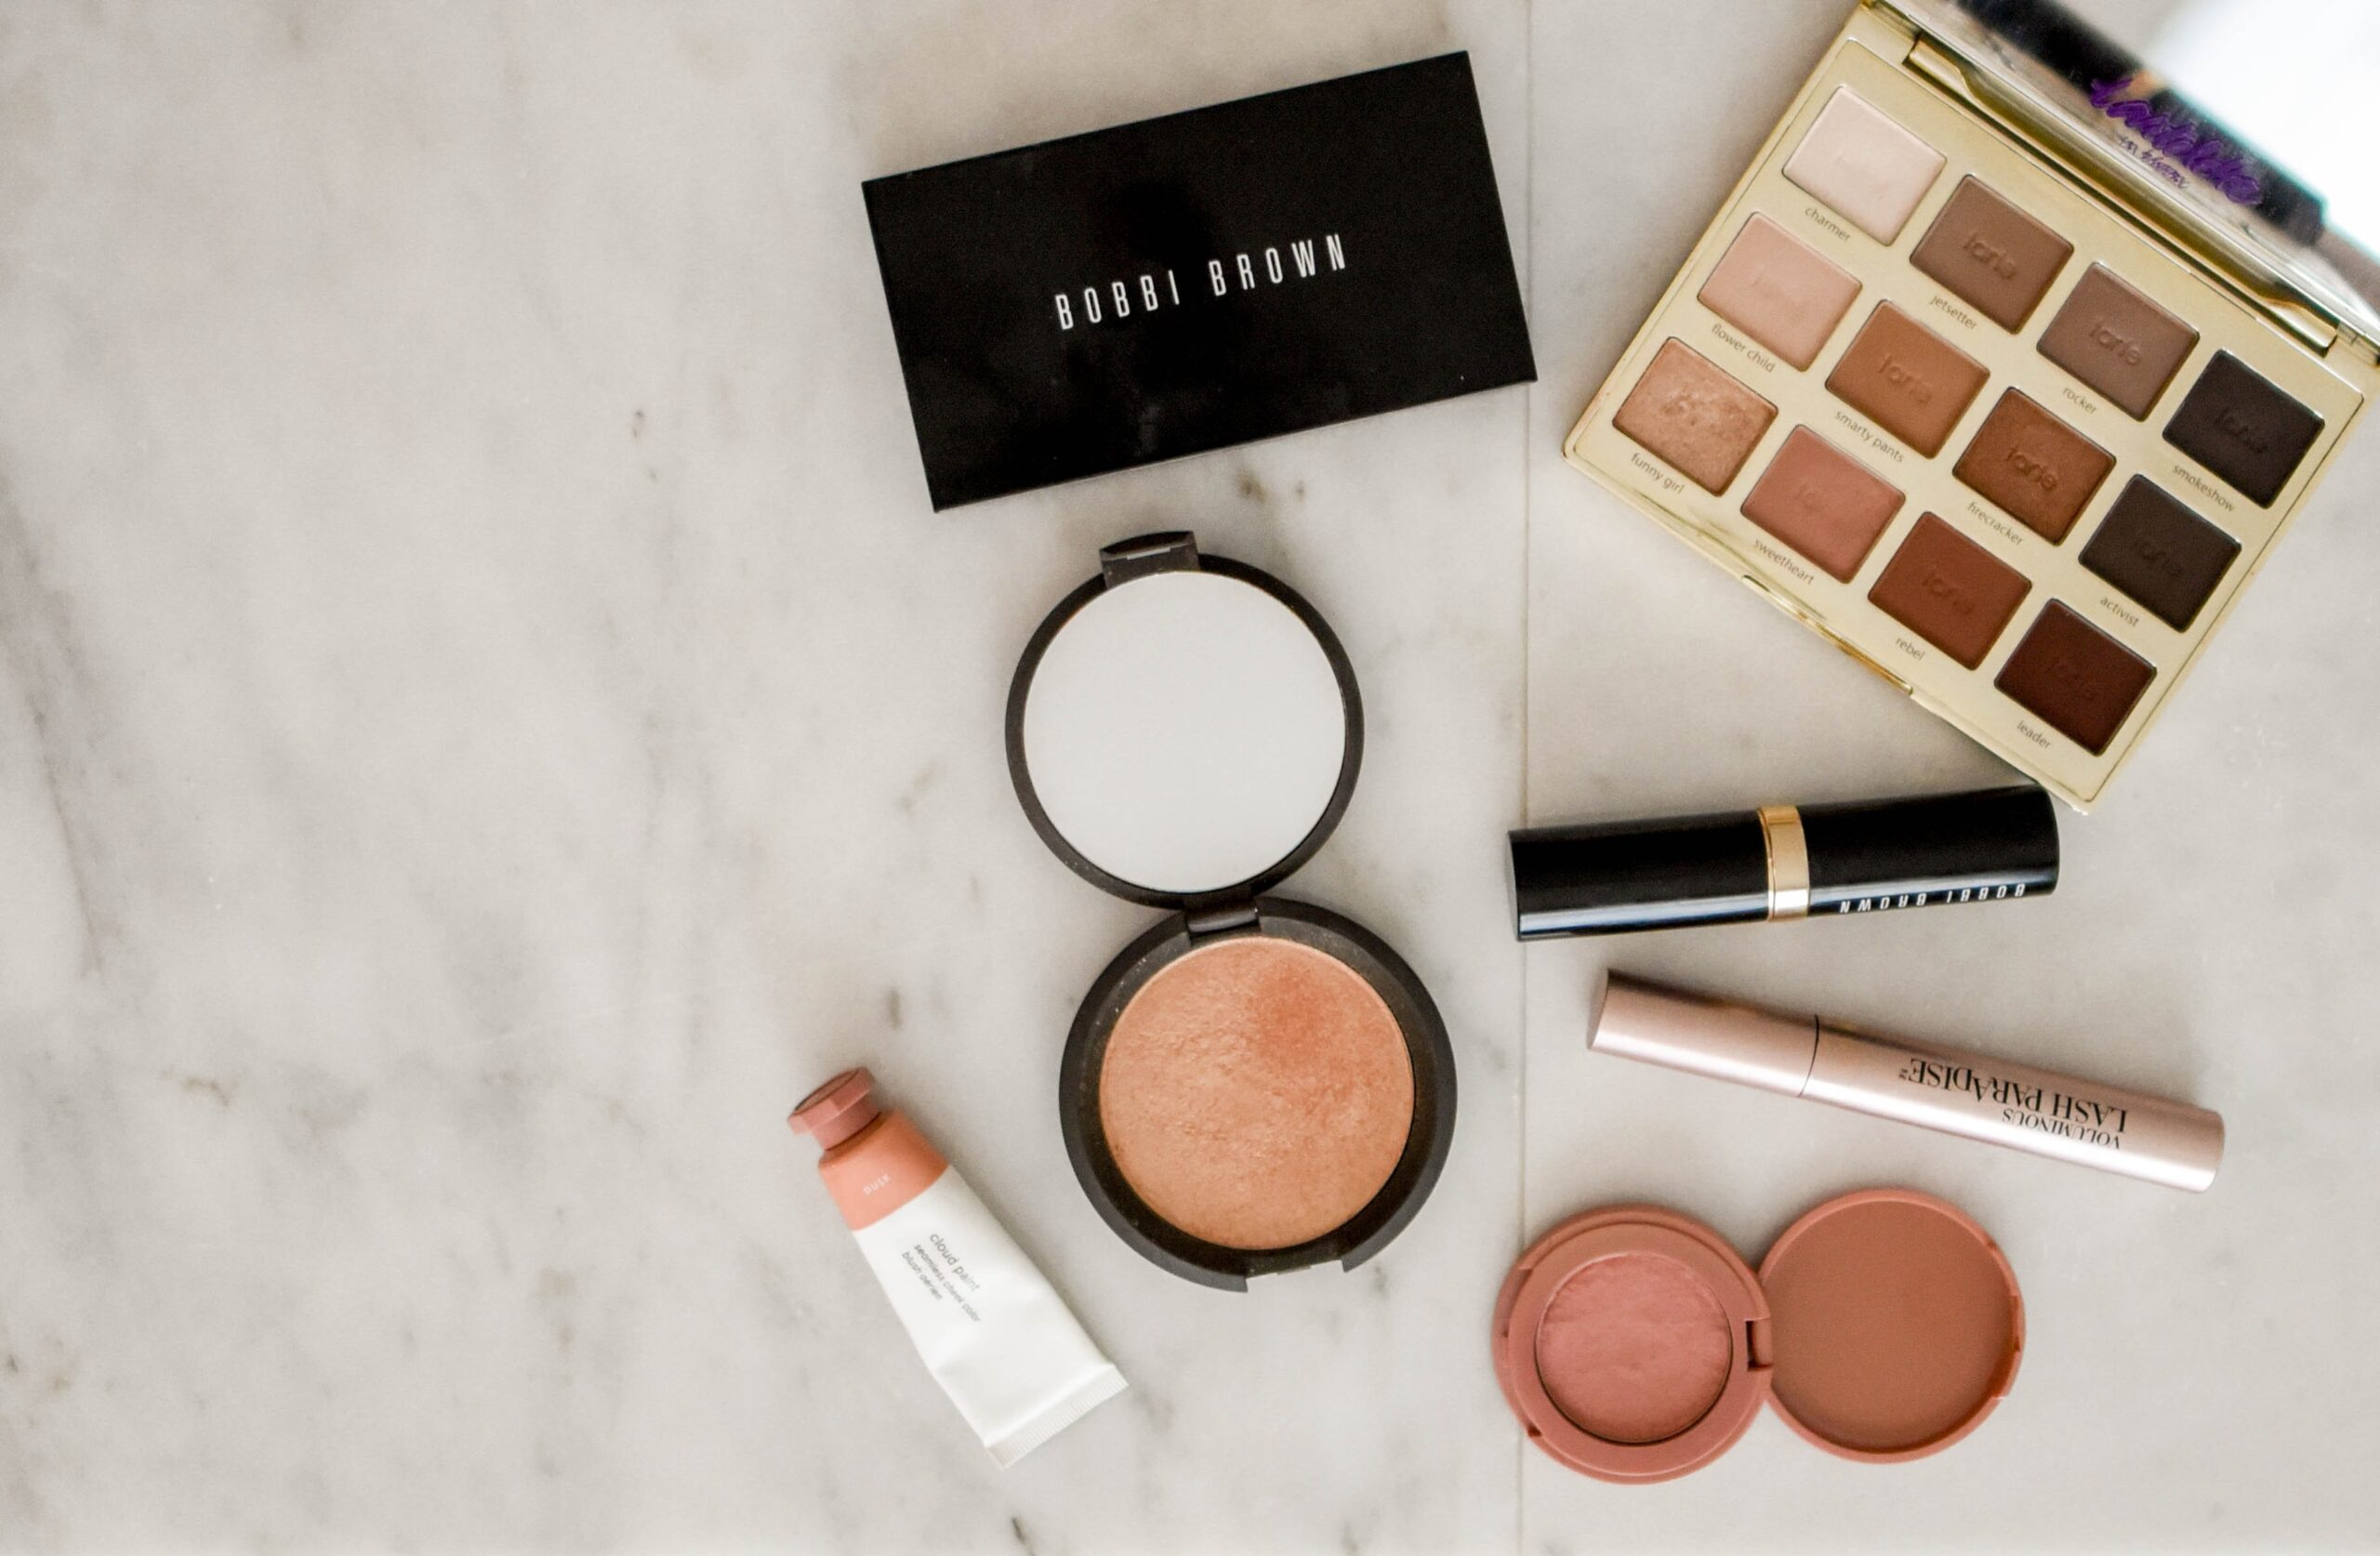 7 Vegan and Cruelty-Free Makeup Brands to Support Right Now